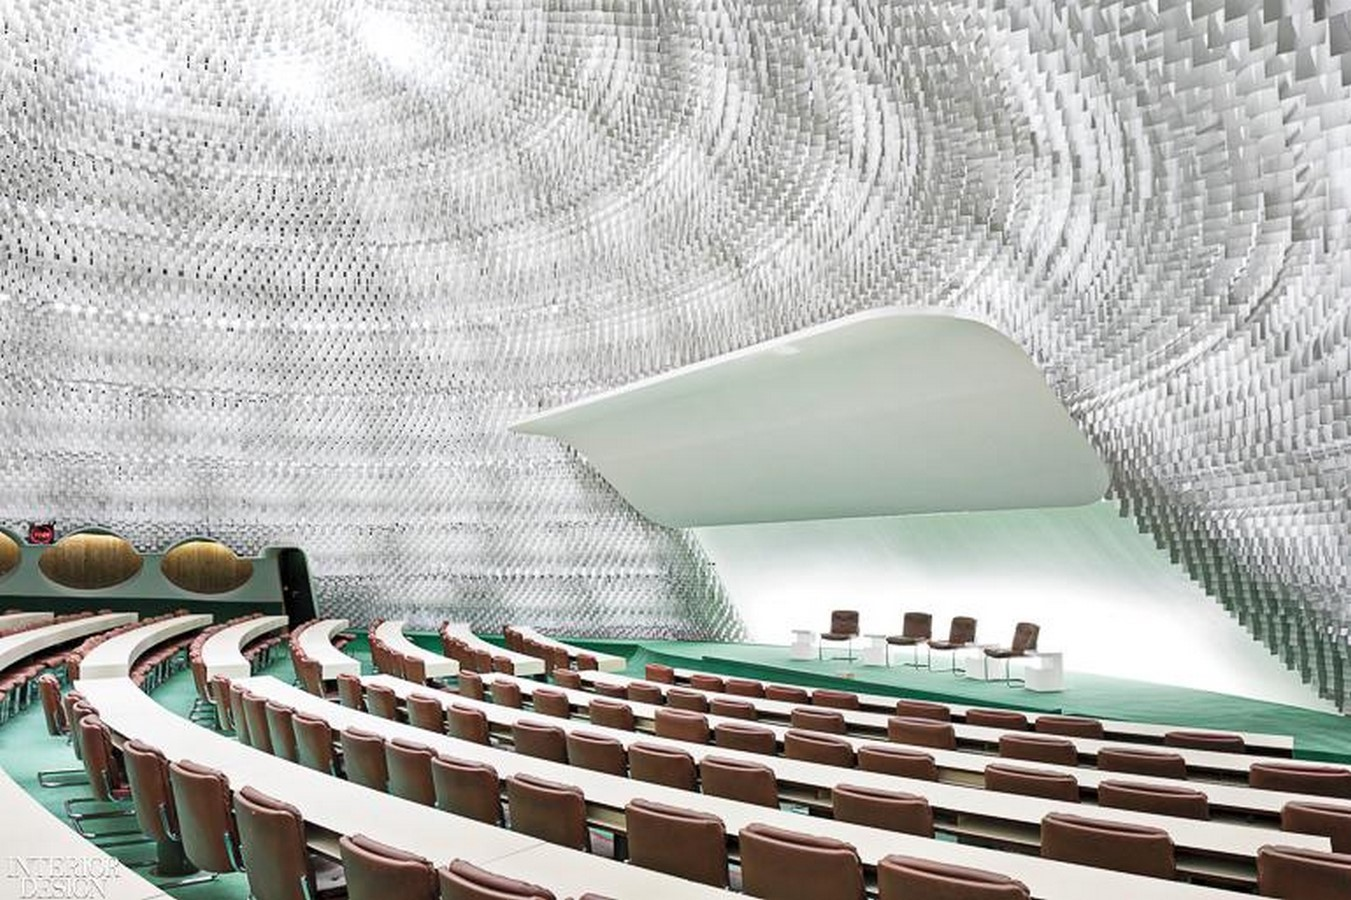 French Communist Party Headquarters by Oscar Niemeyer: Along with the City - Sheet8